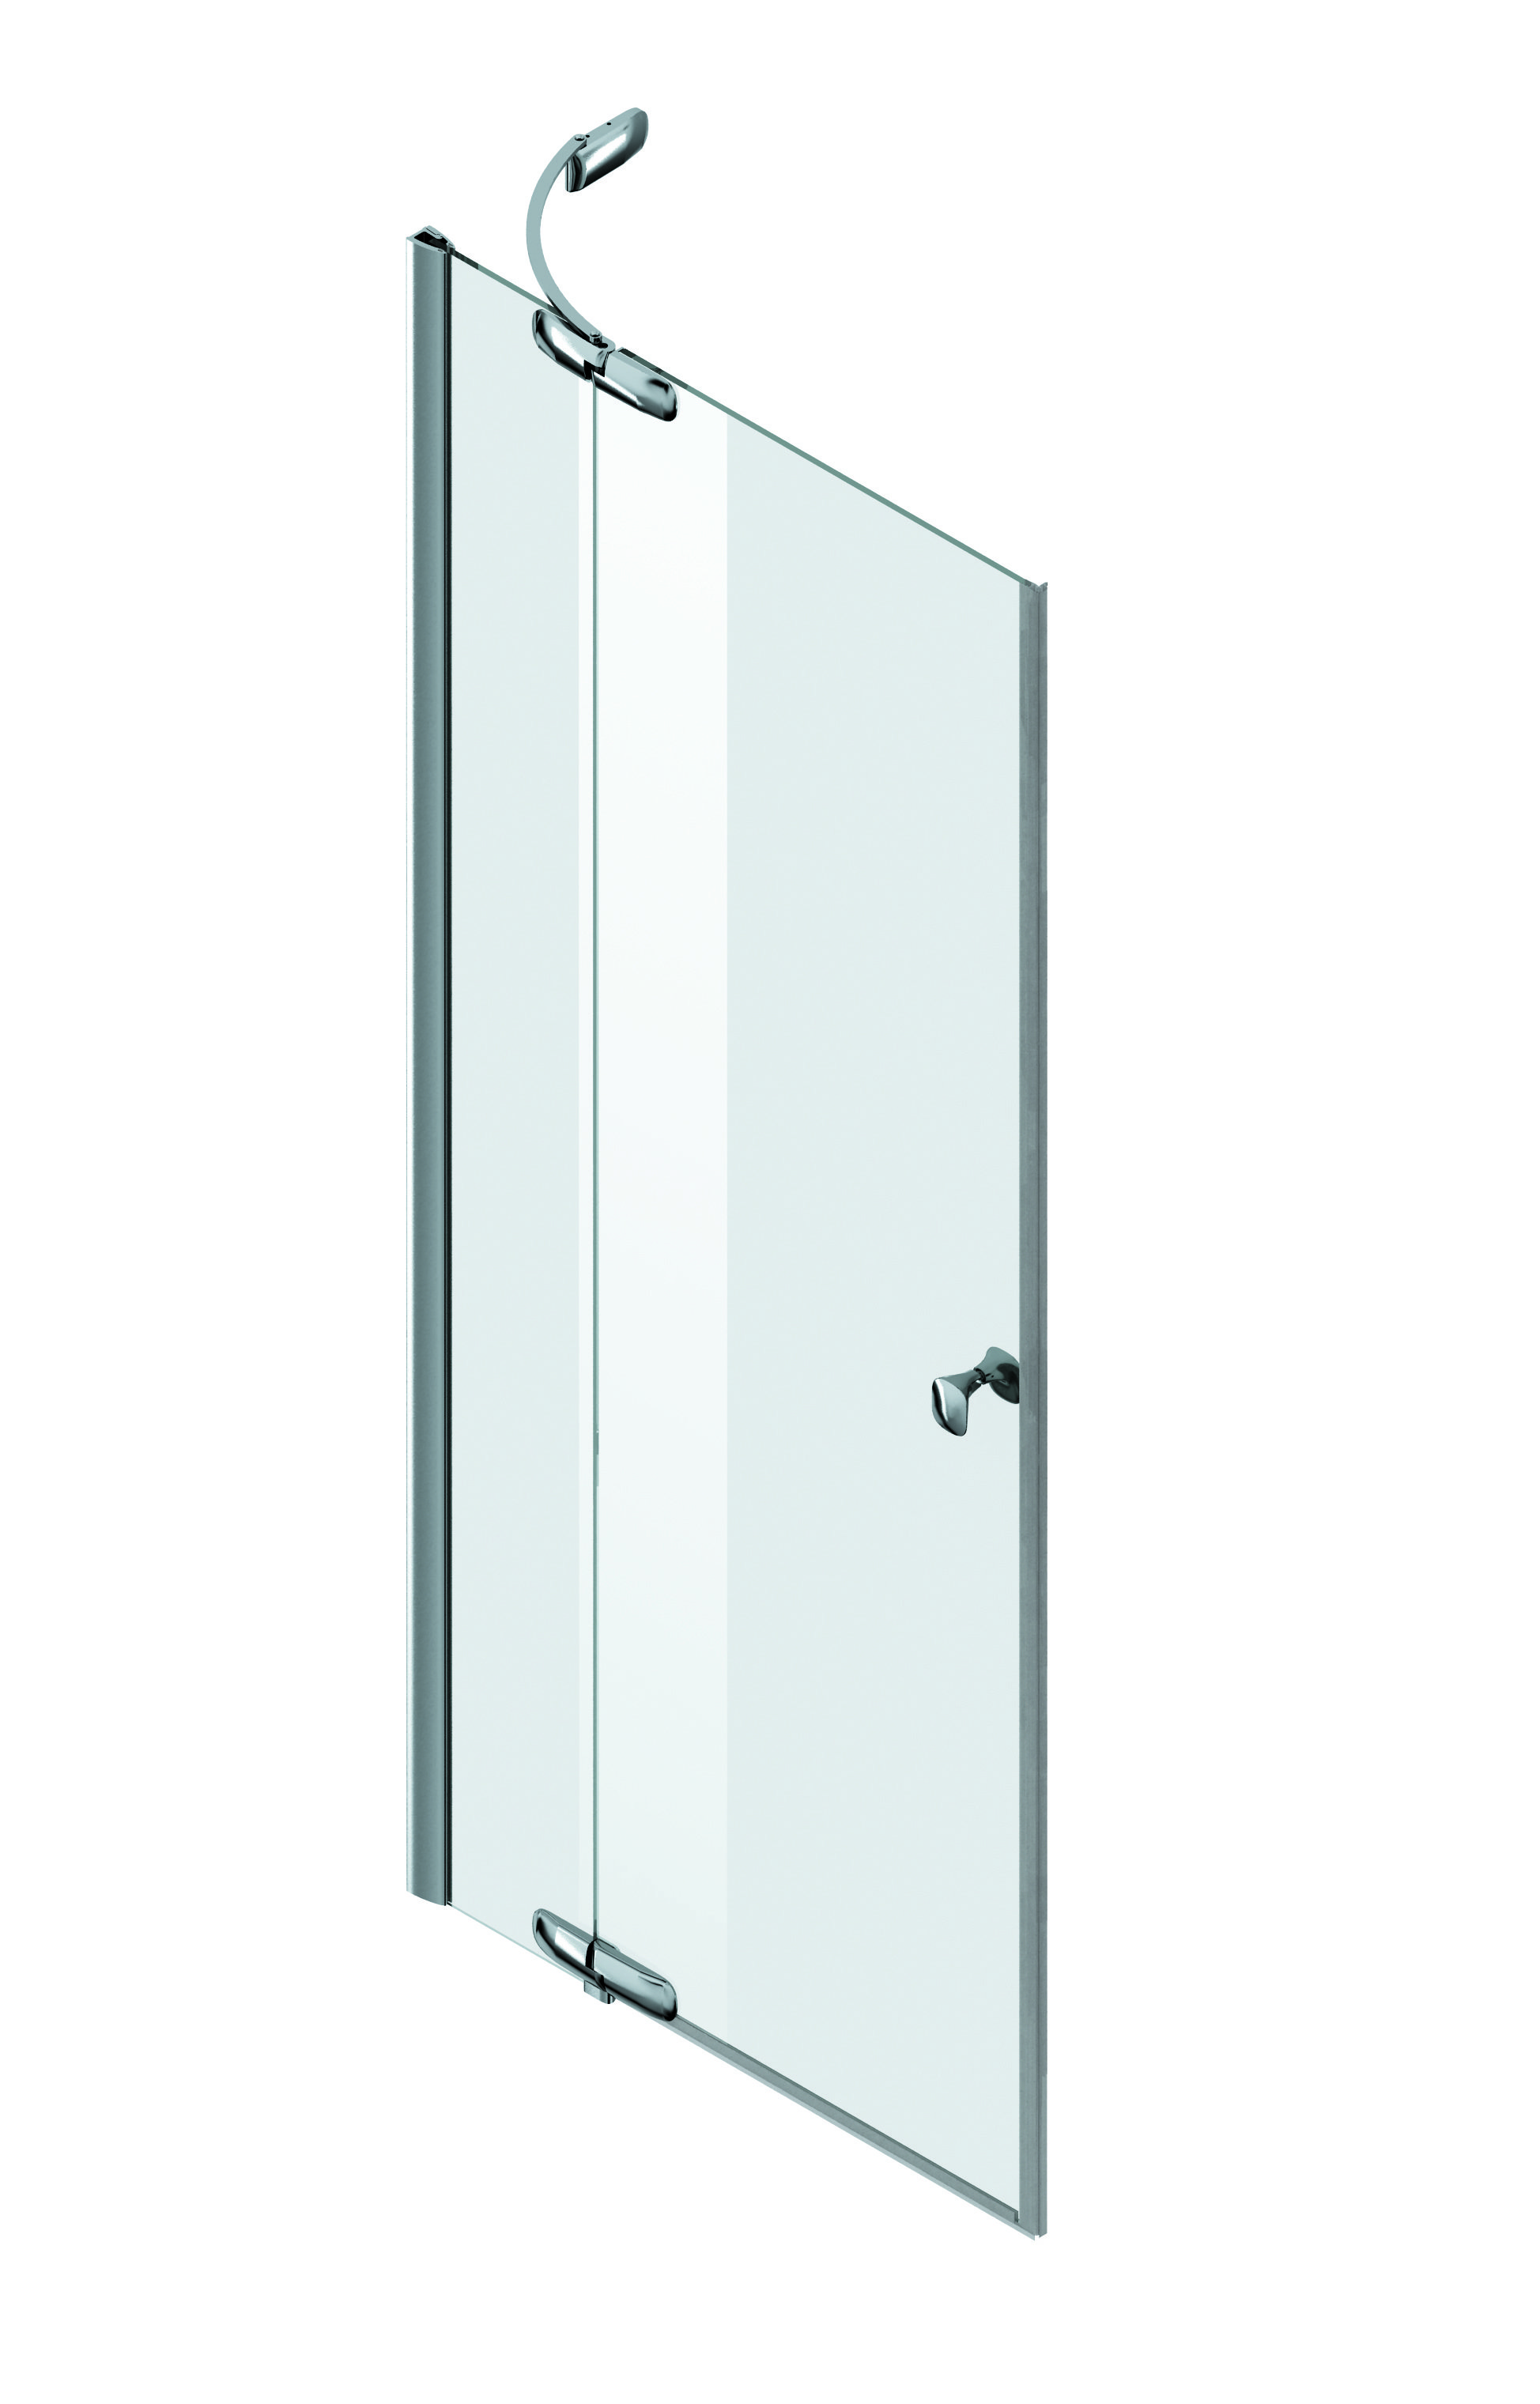 W30G-E3D5-200-CT L/R Pivot door with fixed segment